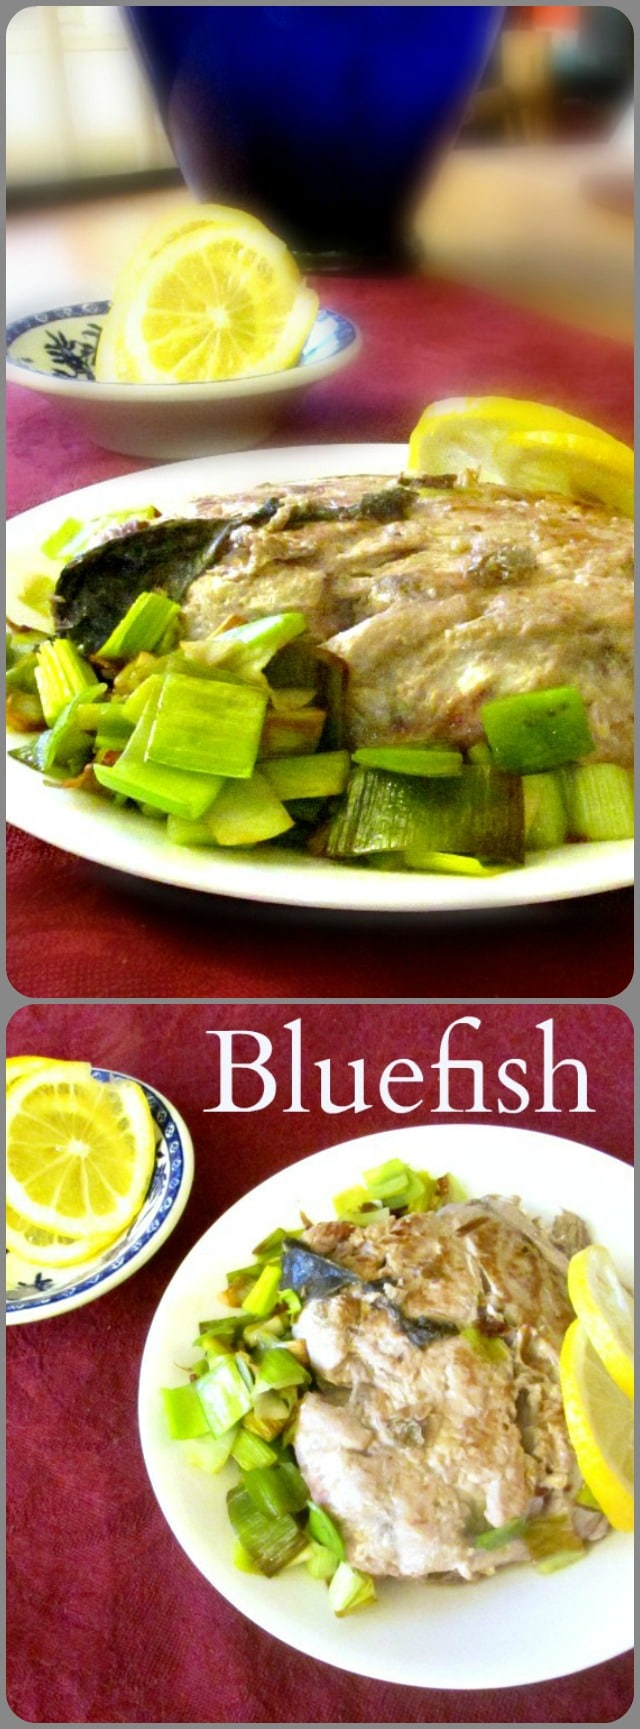 Fresh, wild caught, richly flavored bluefish - a local treat here on the East Coast. A basic recipe for it, that can be adapted to other fish as needed.